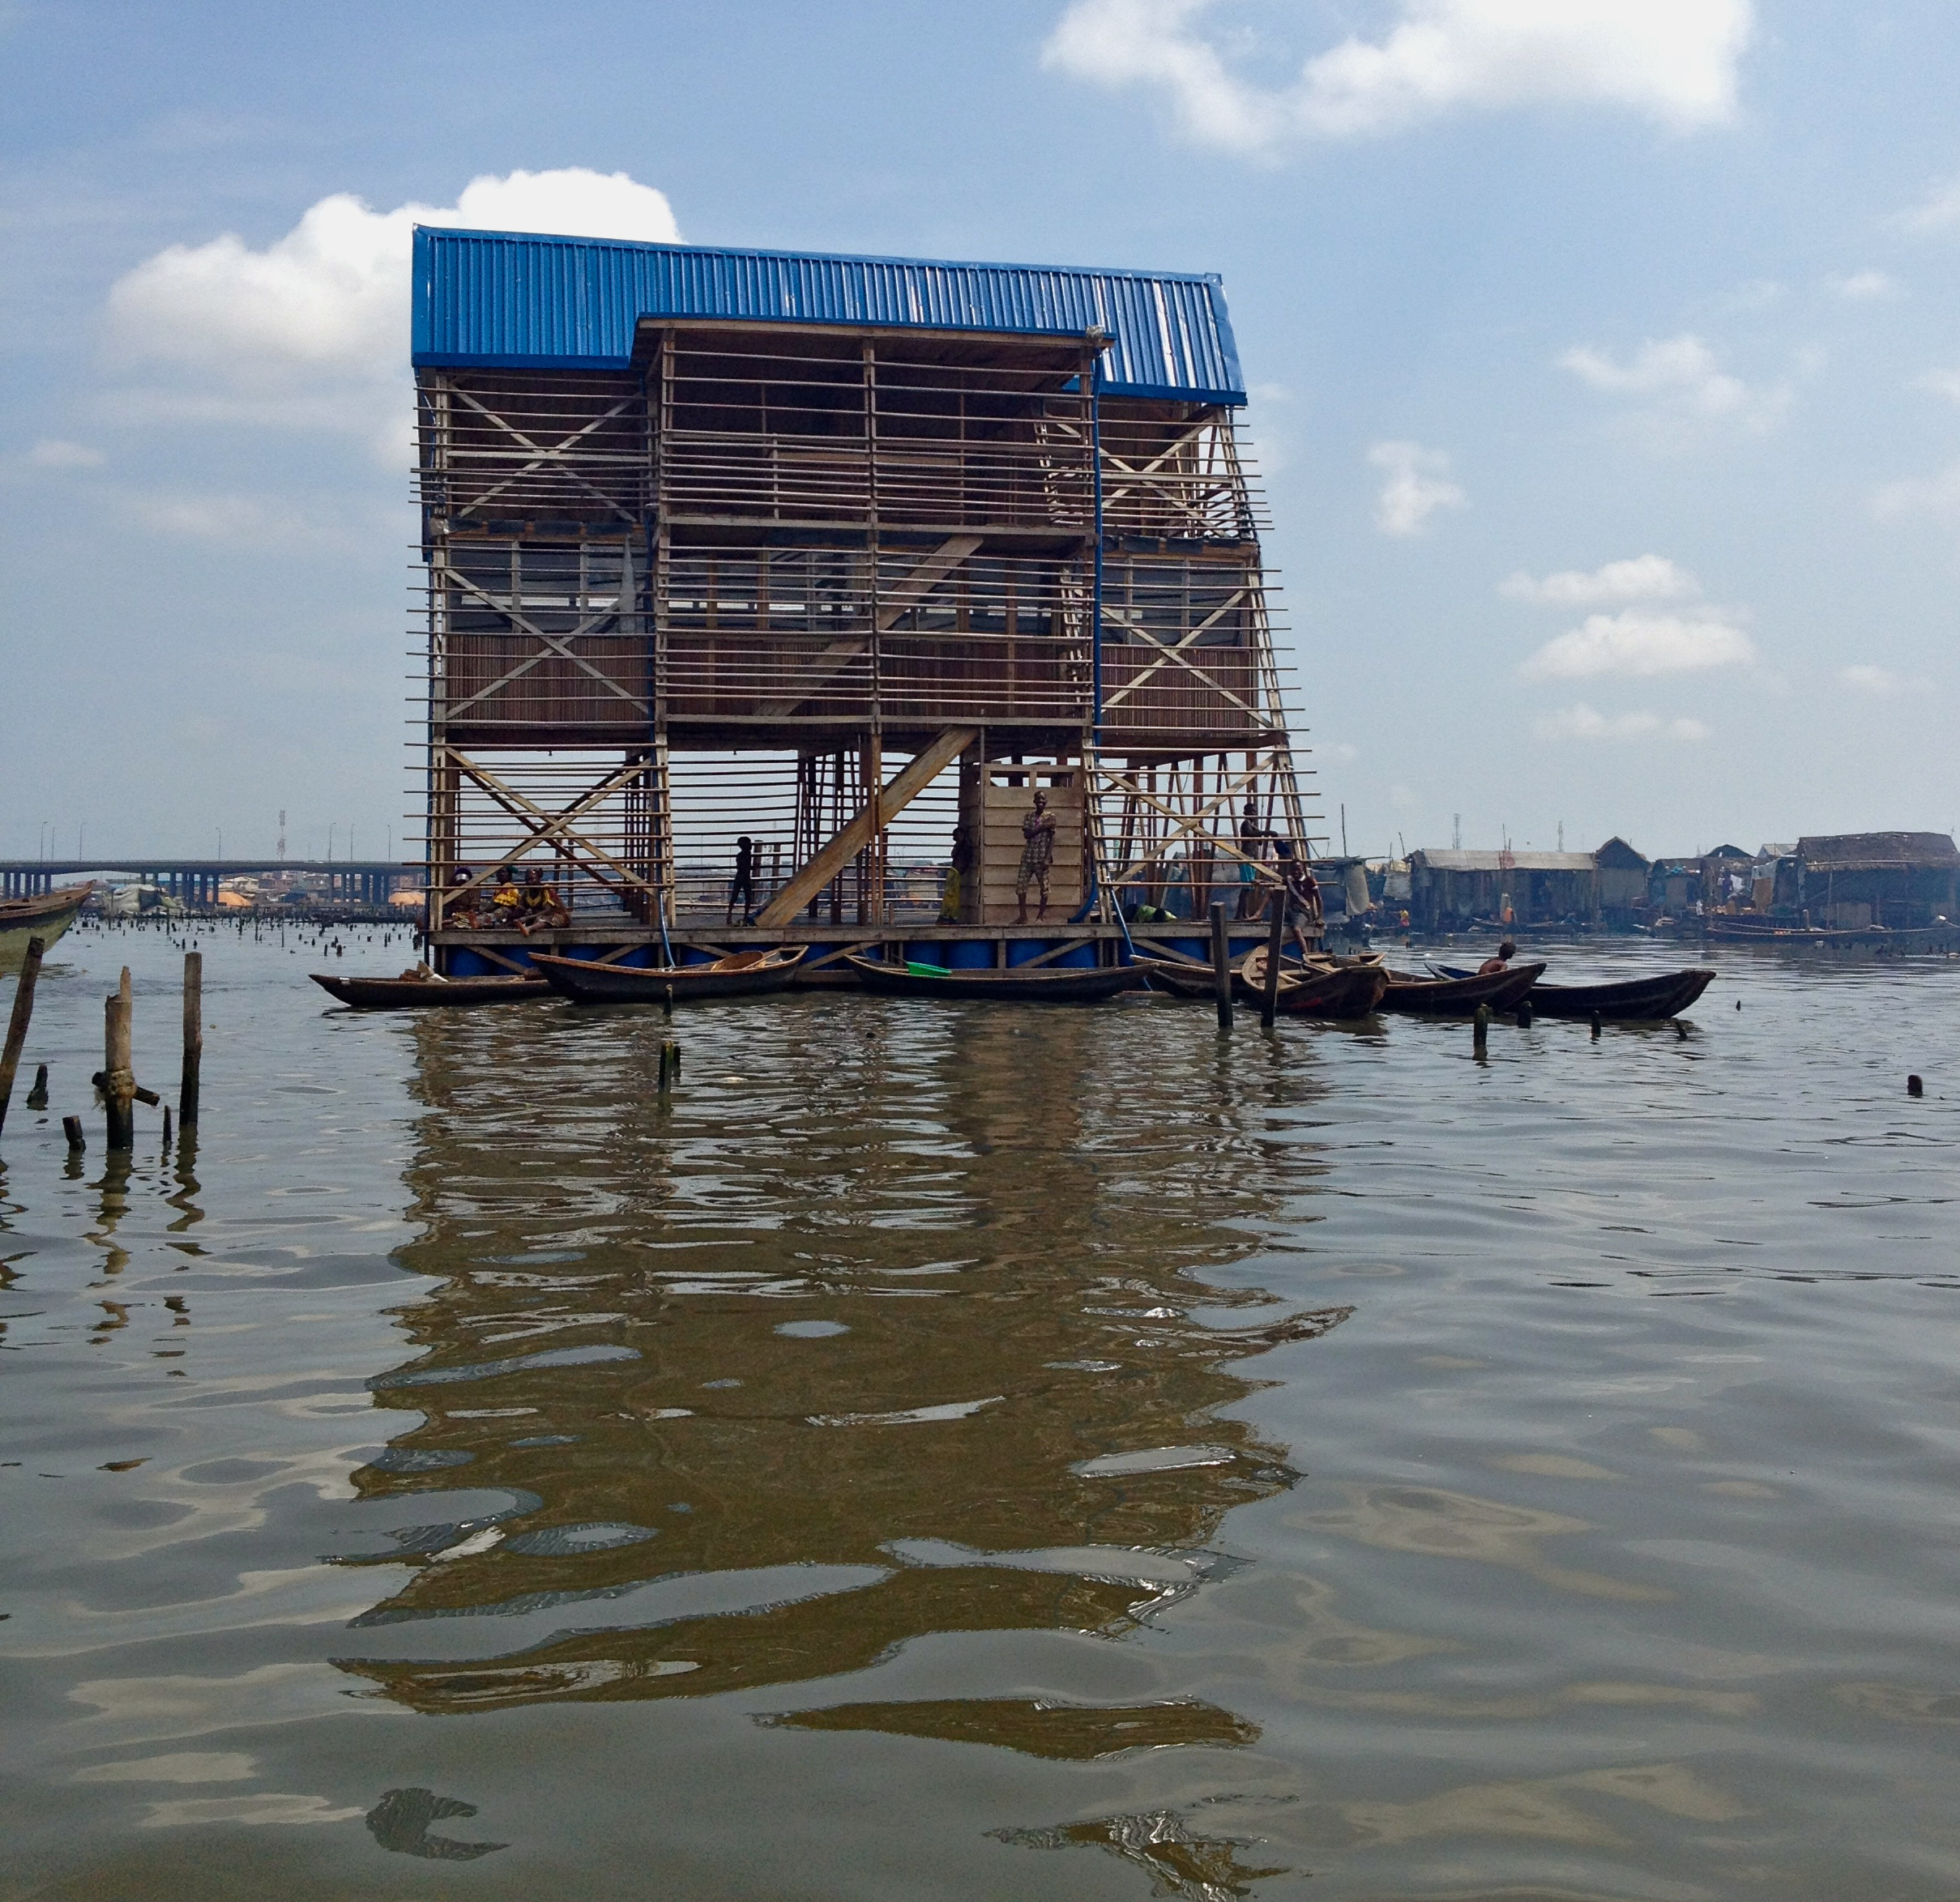 Makoko Floating School Image: Authors own